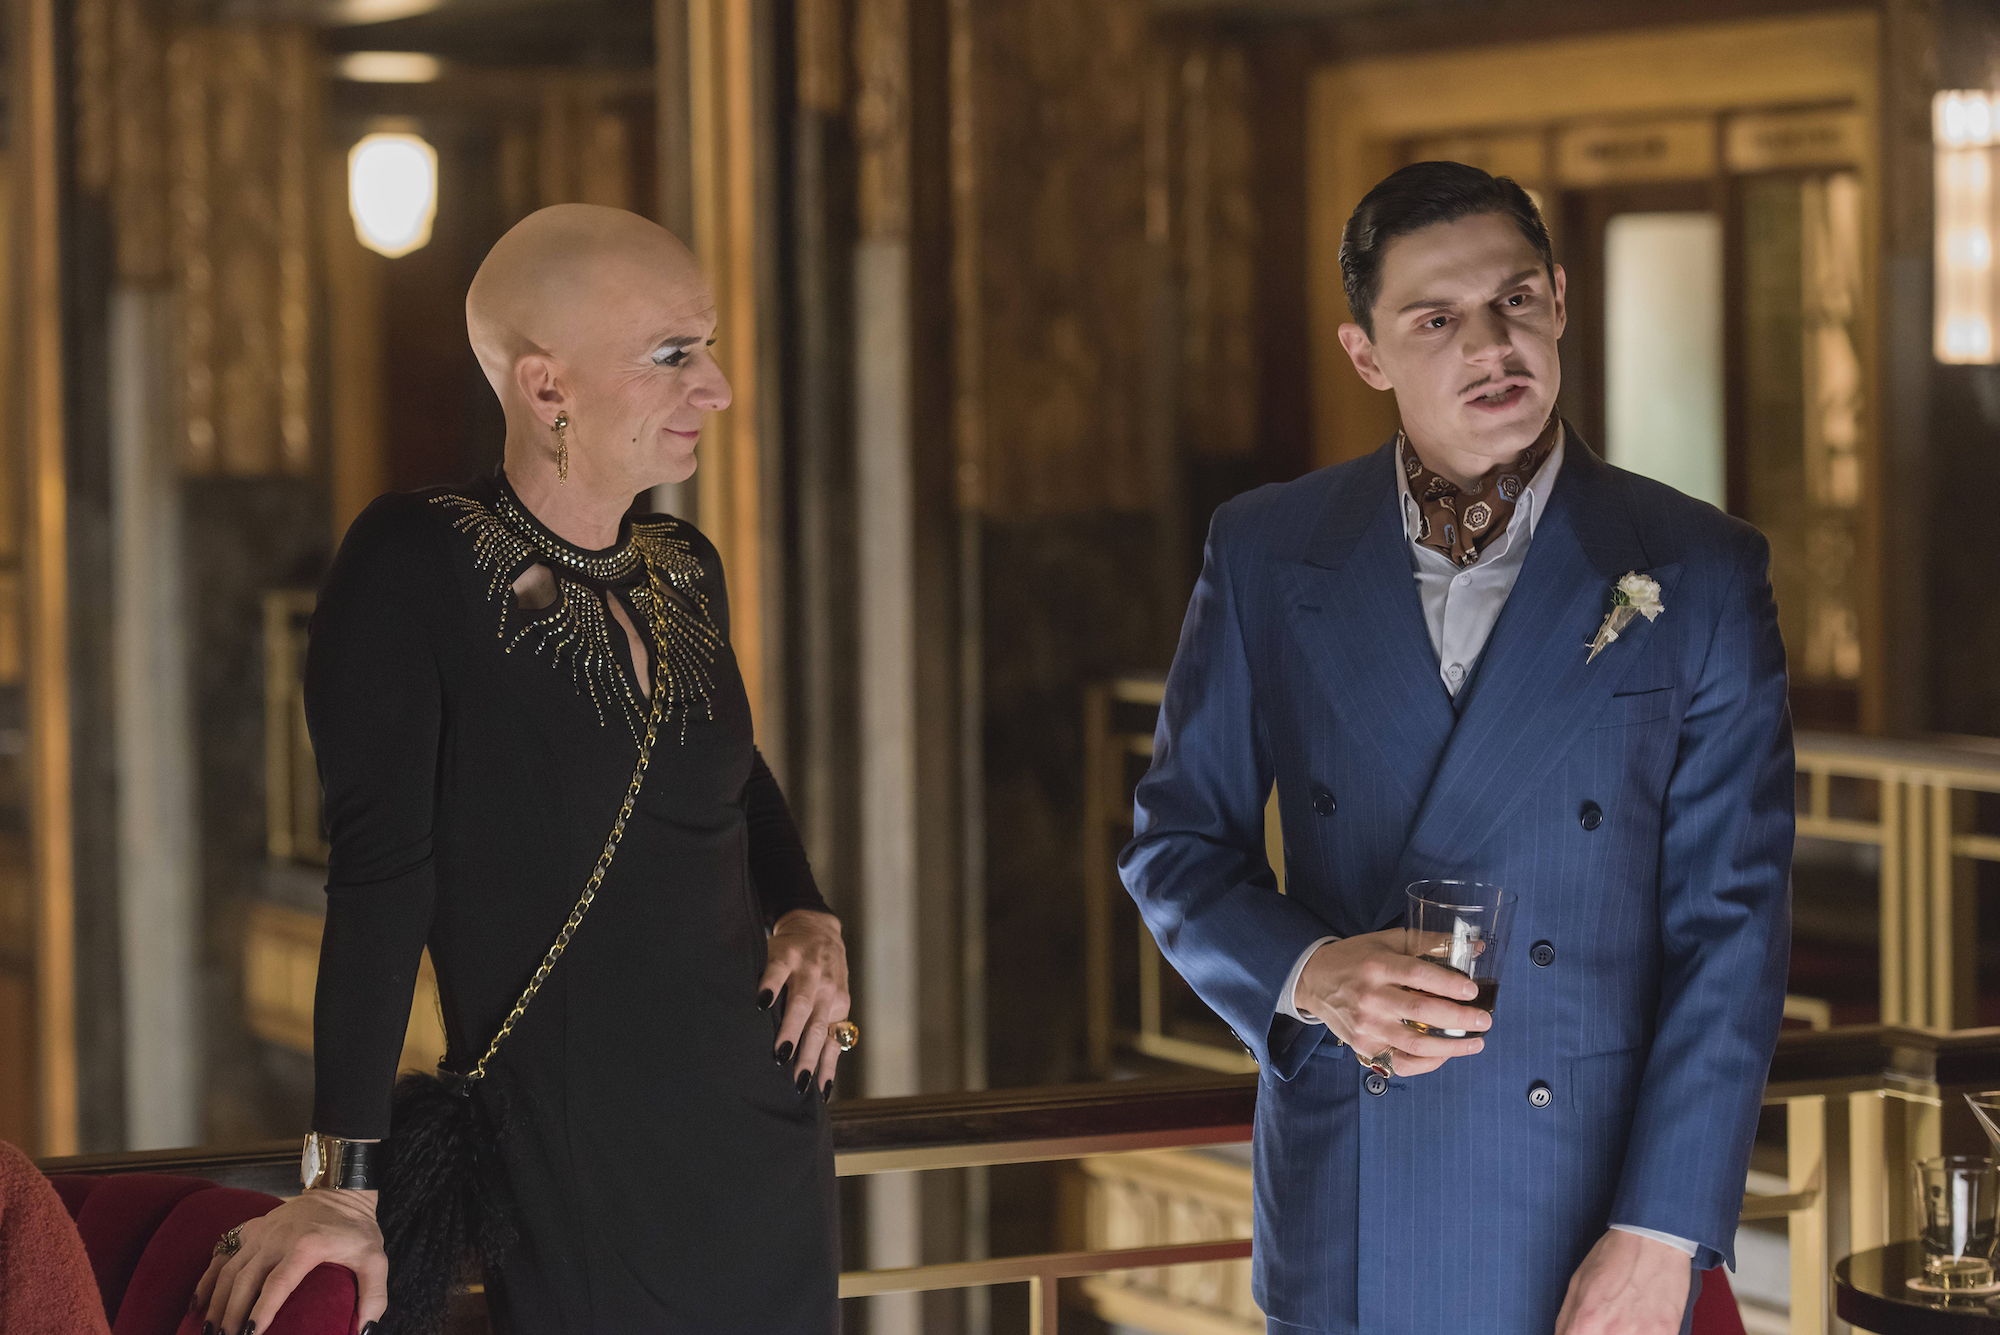 Denis O'Hare as Liz and Evan Peters as Mr. March in 'AMERICAN HORROR STORY: HOTEL'